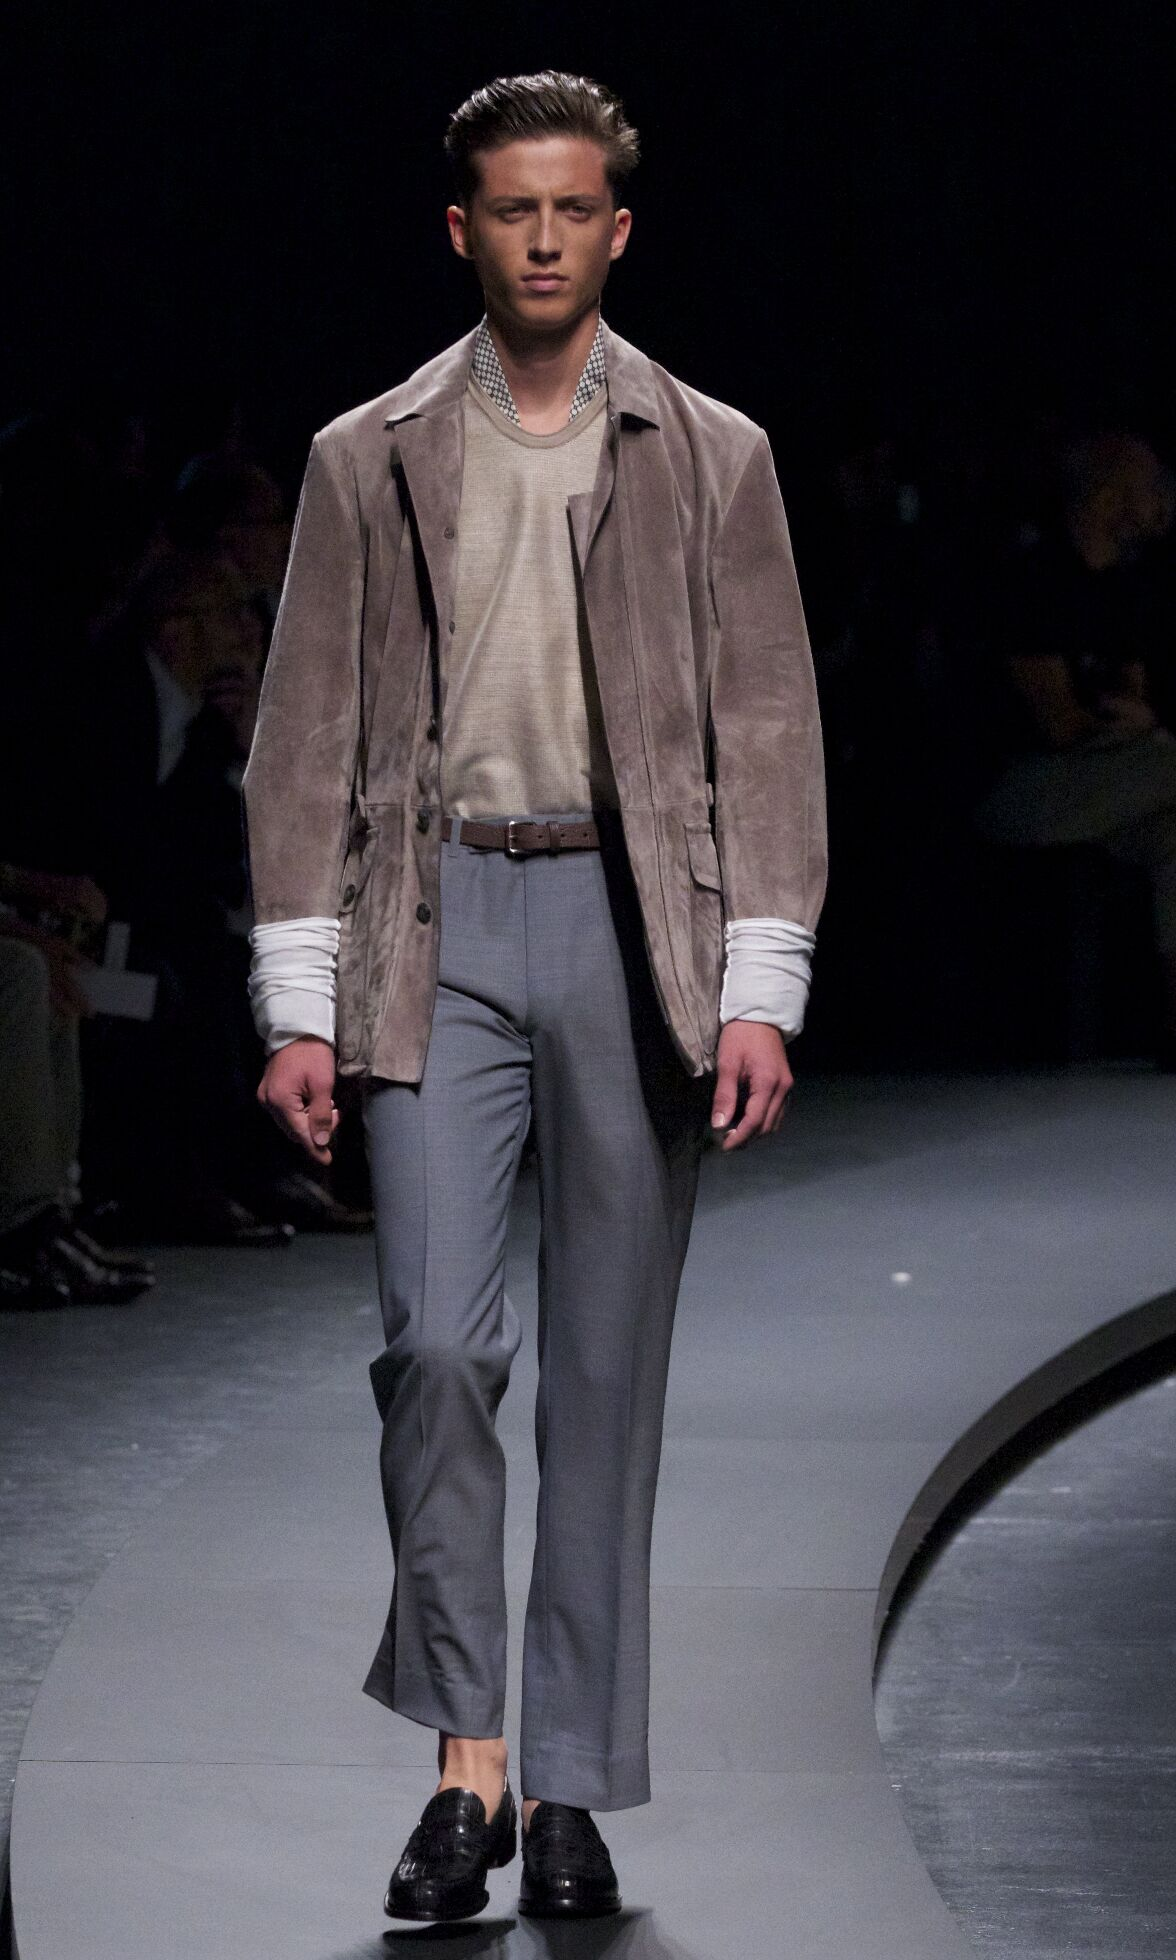 Runway Ermenegildo Zegna Spring Summer 2014 Men Collection Milan Fashion Week